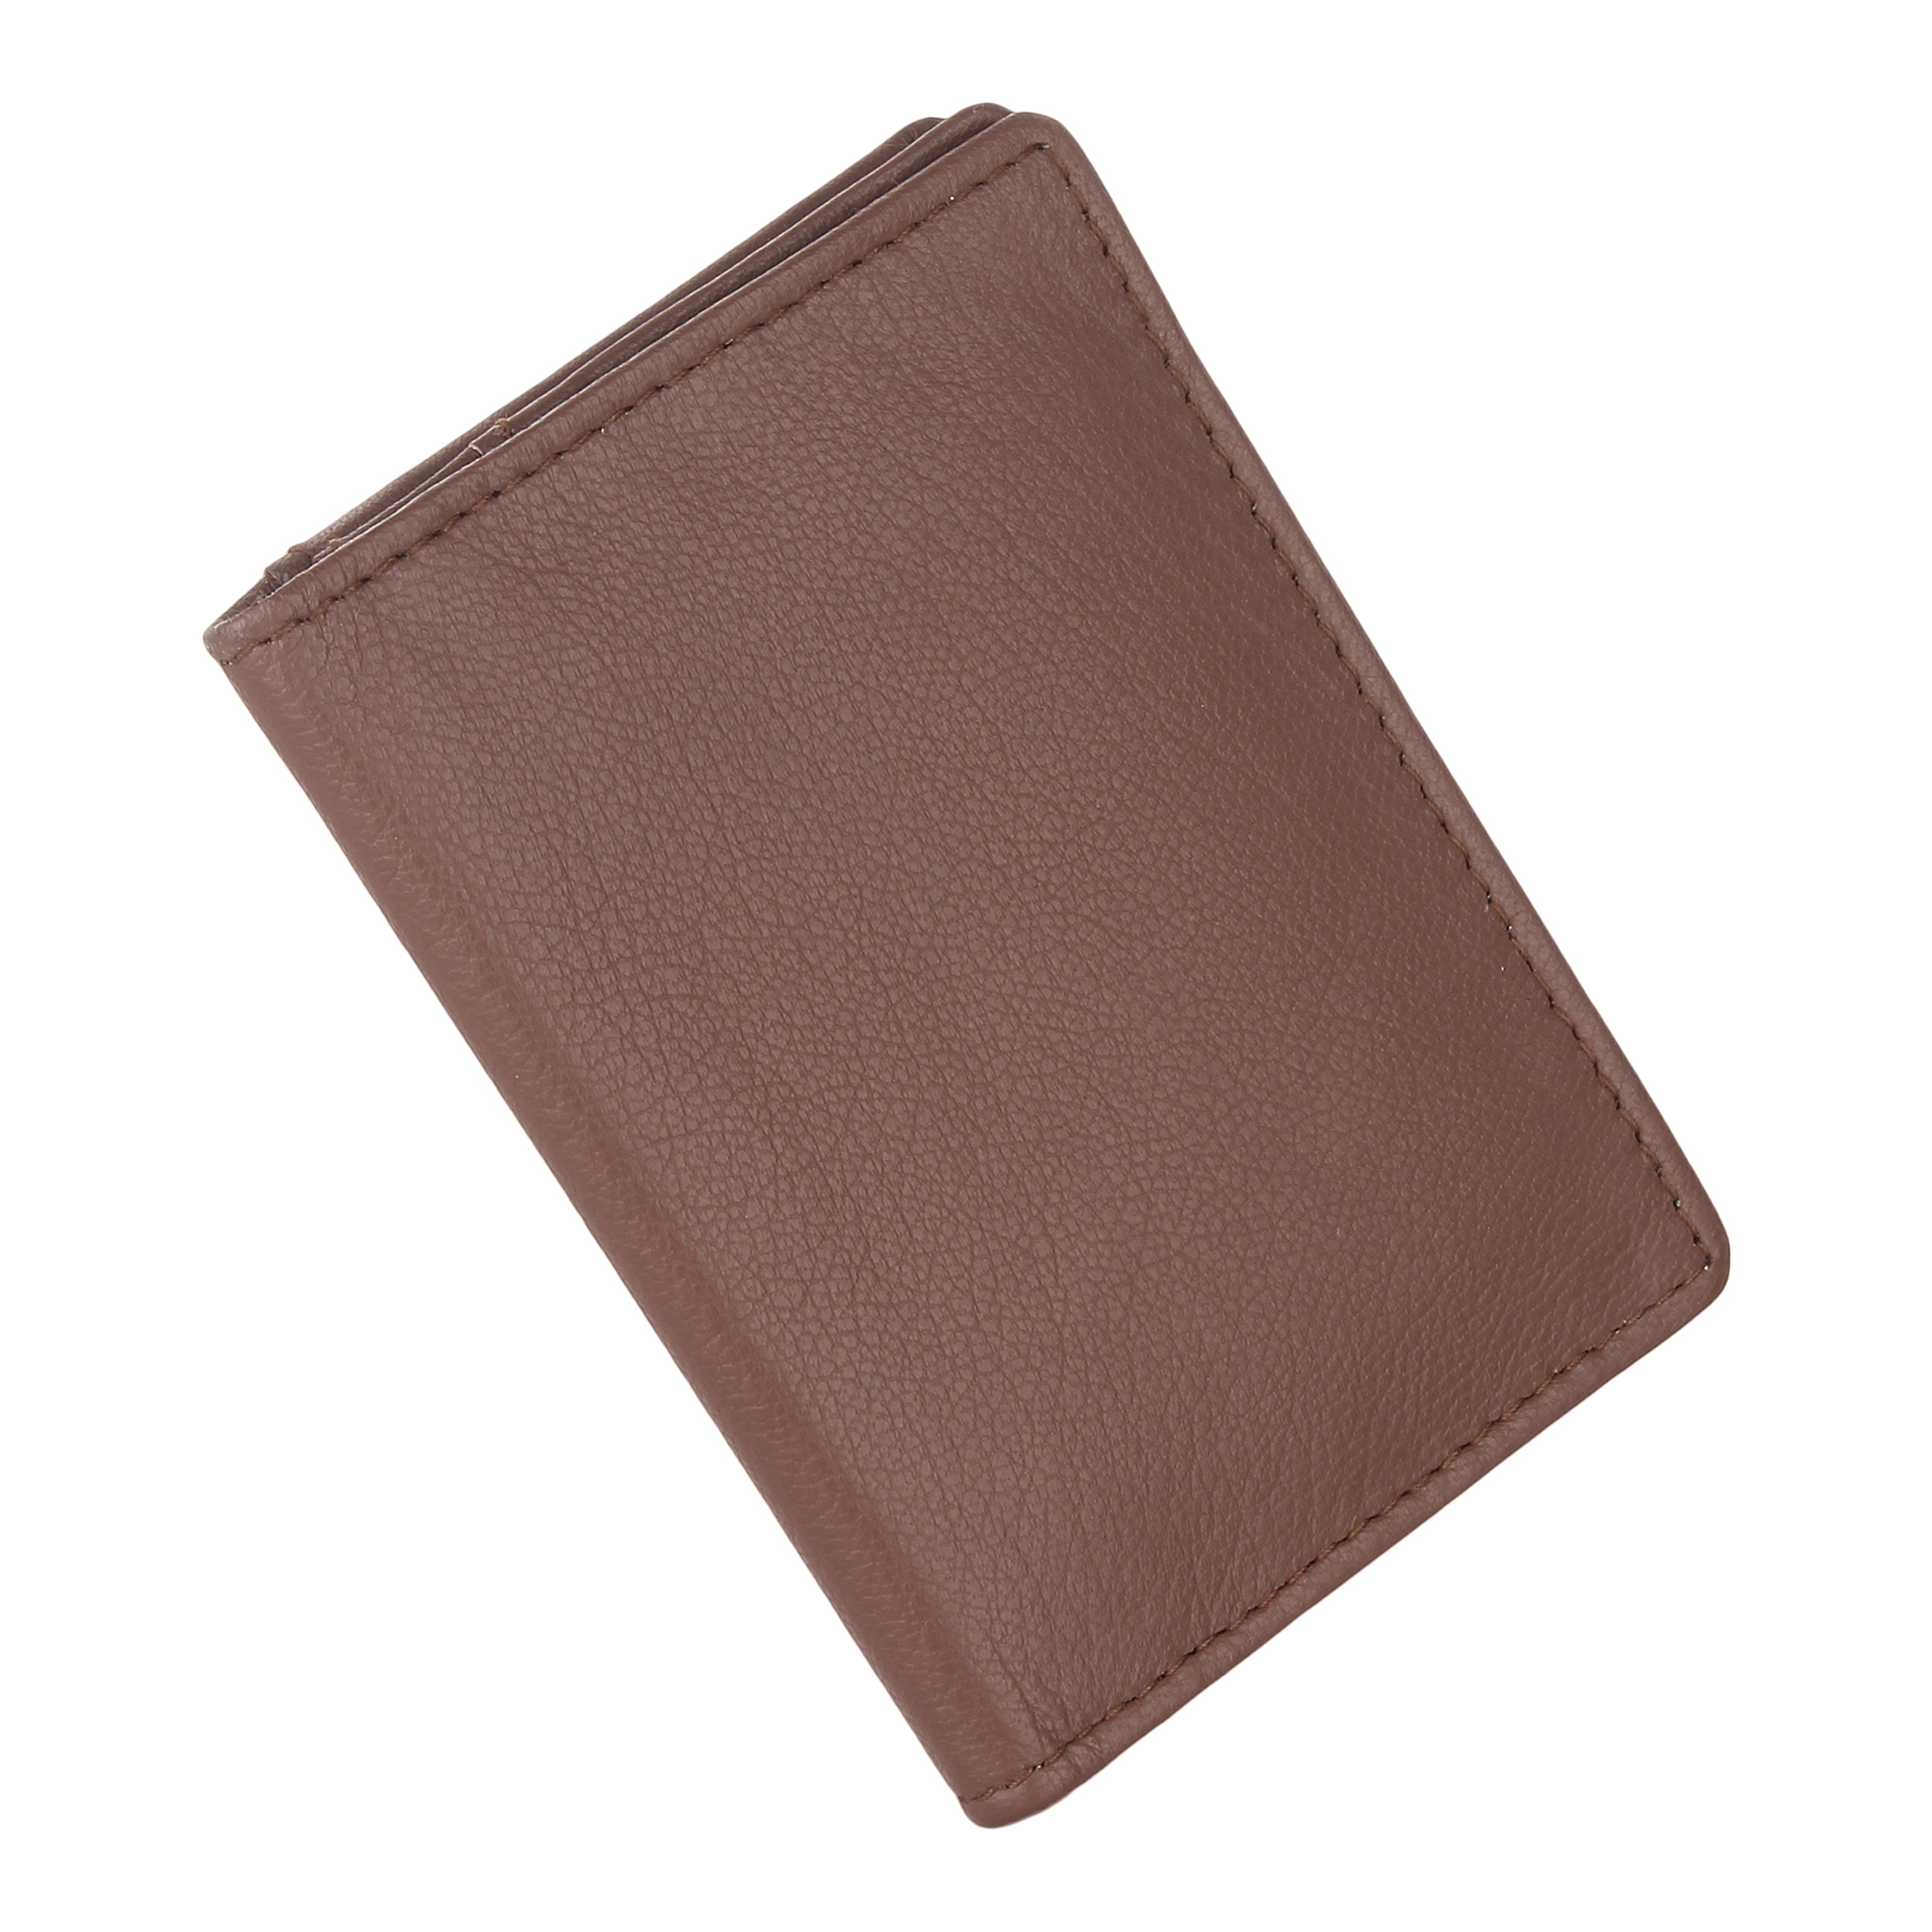 Leather Card Holder Wallet Manufacturers In Romania, Card Holder Wallet Suppliers In Romania, Card Holder Wallet Wholesalers In Romania, Card Holder Wallet Traders In Romania